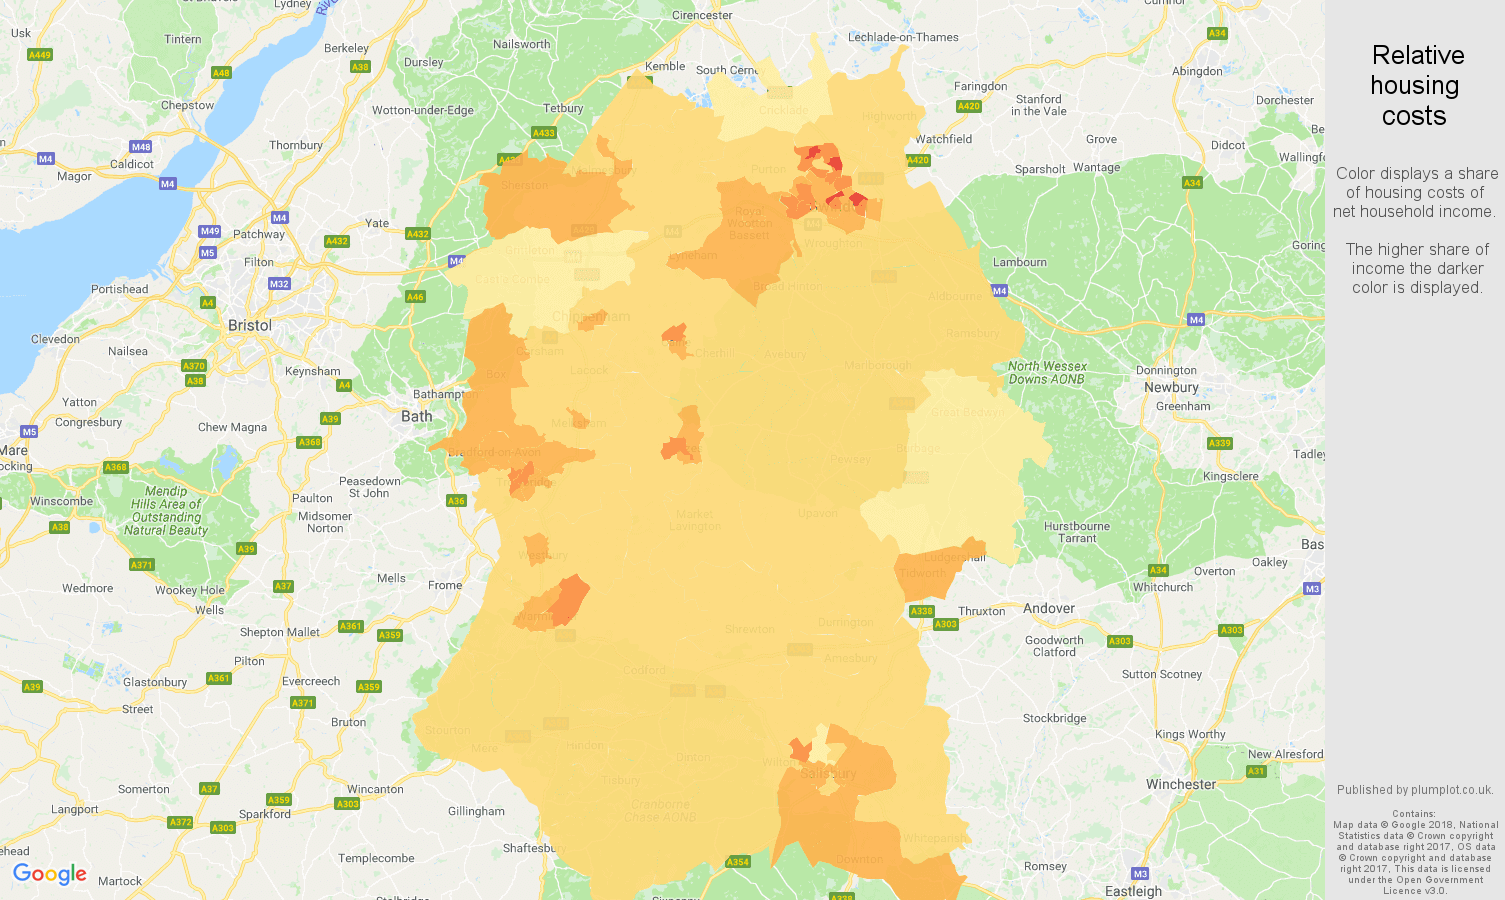 Wiltshire relative housing costs map